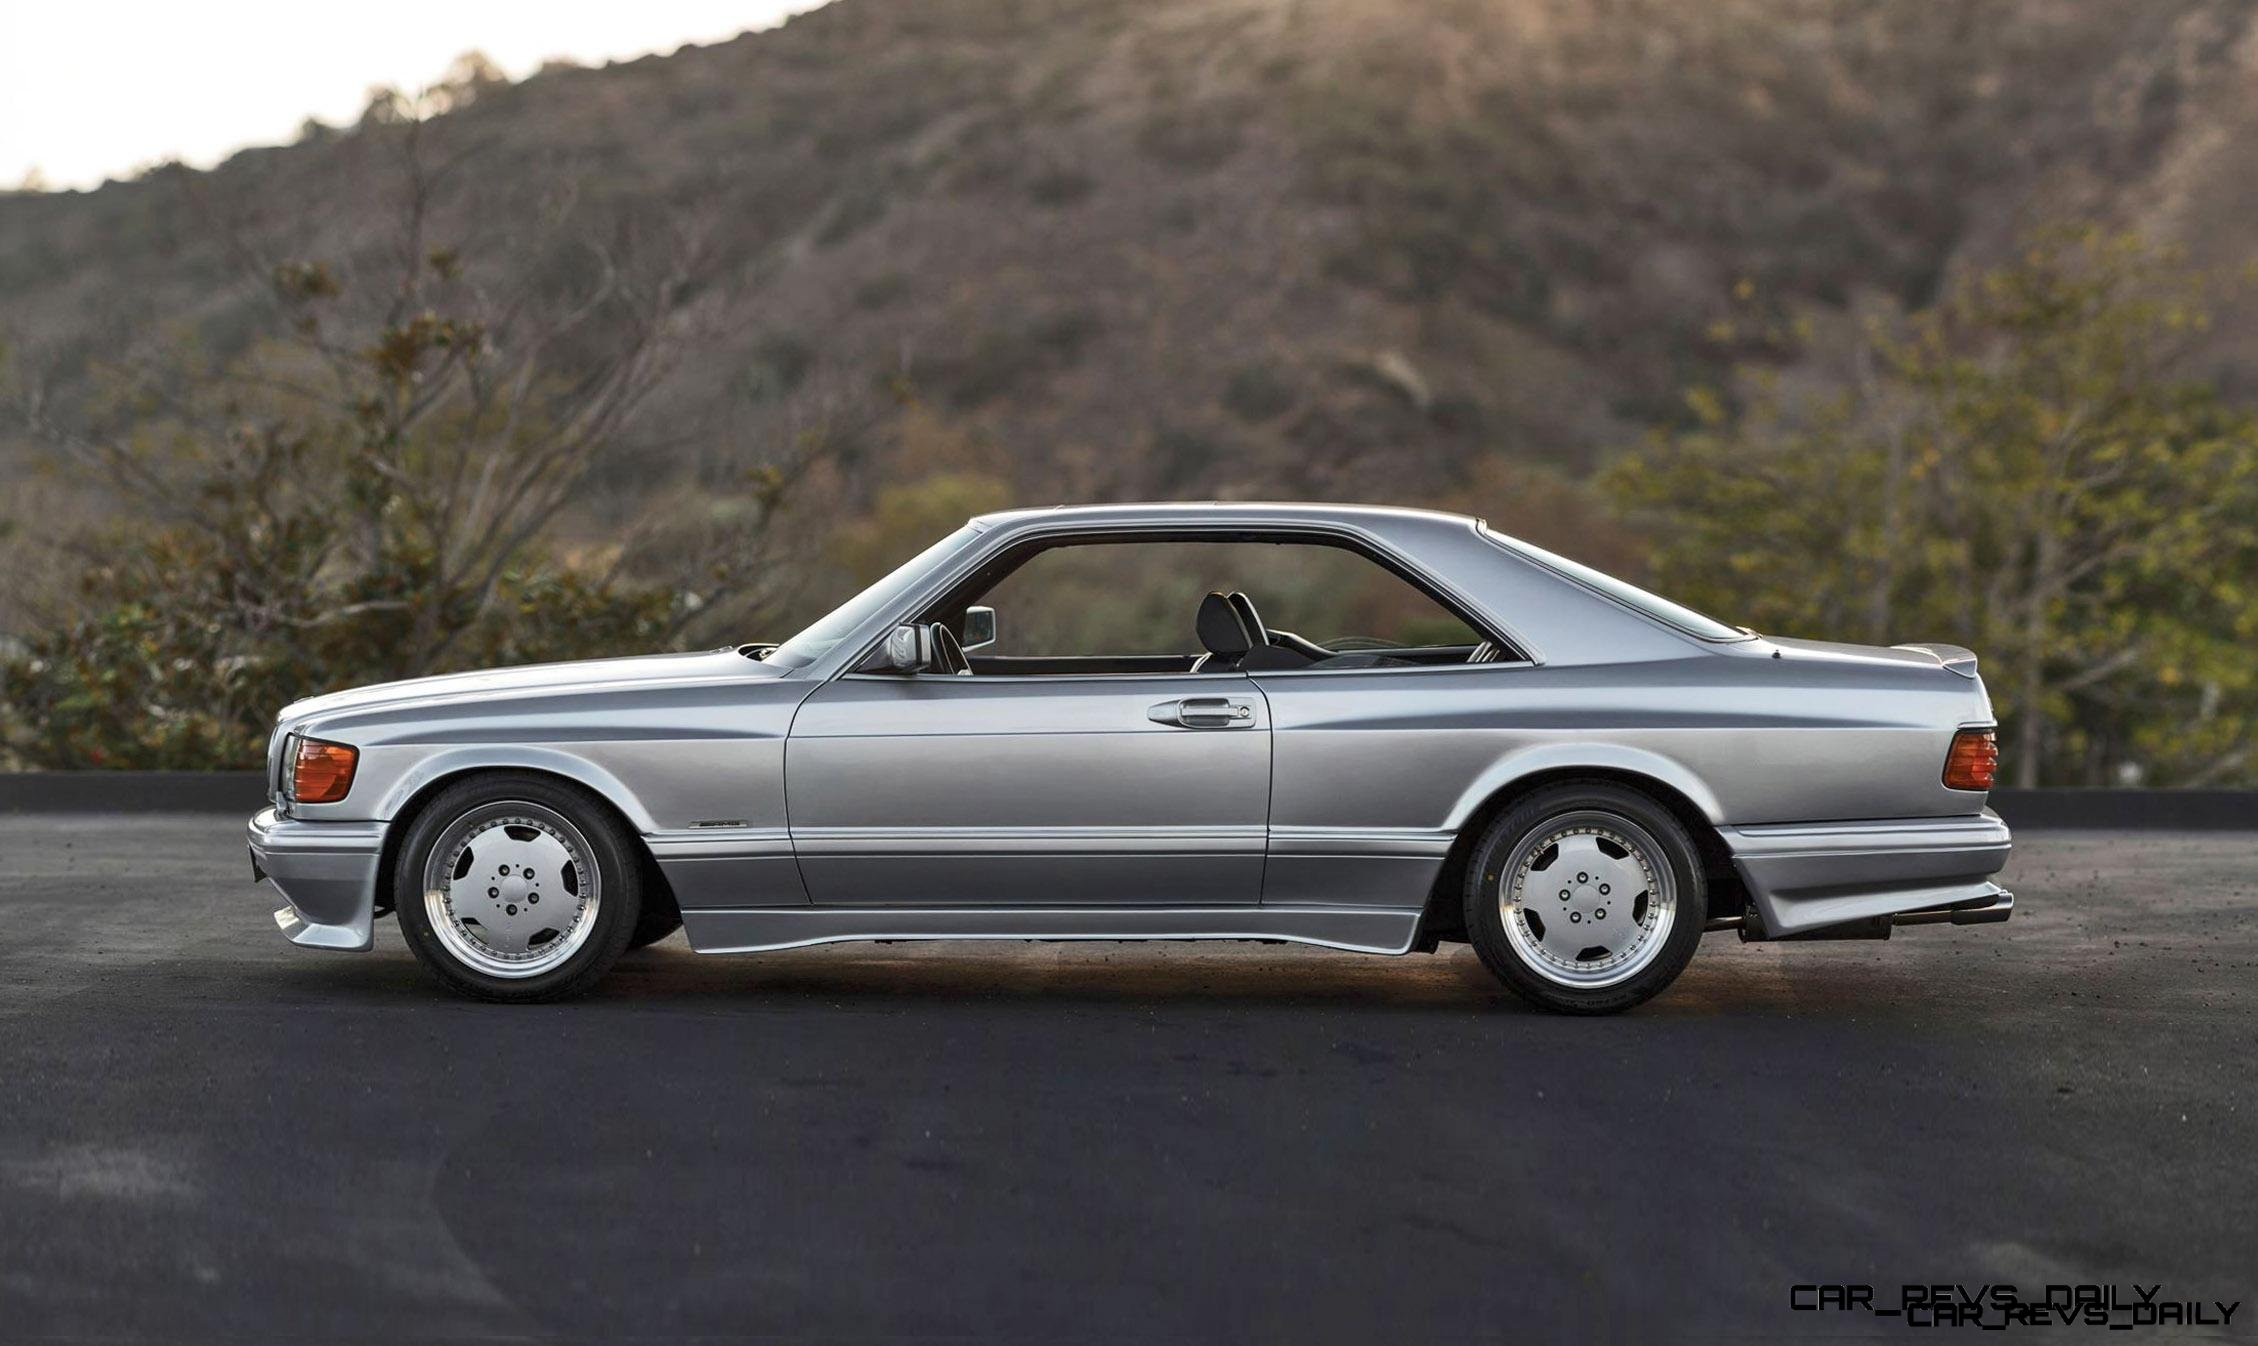 1989 Mercedes Benz 560sec 6 0 Amg Widebody Looks Ready For